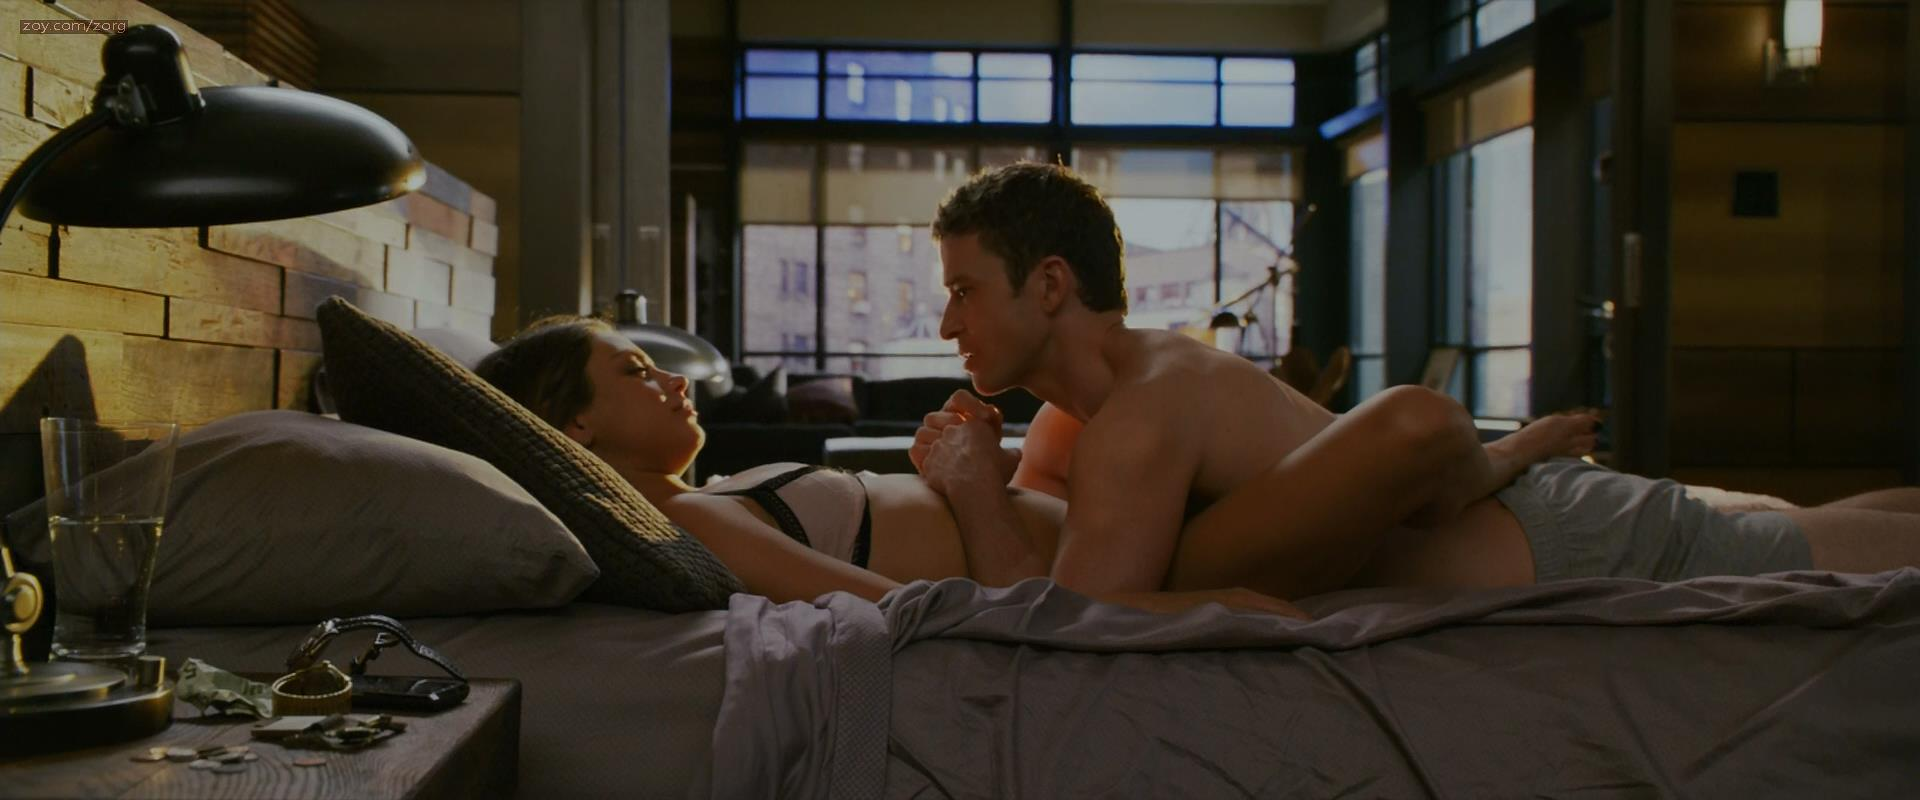 Mila Kunis hot sexy and lot of sex - Friends With Benefits (2011) hd1080p